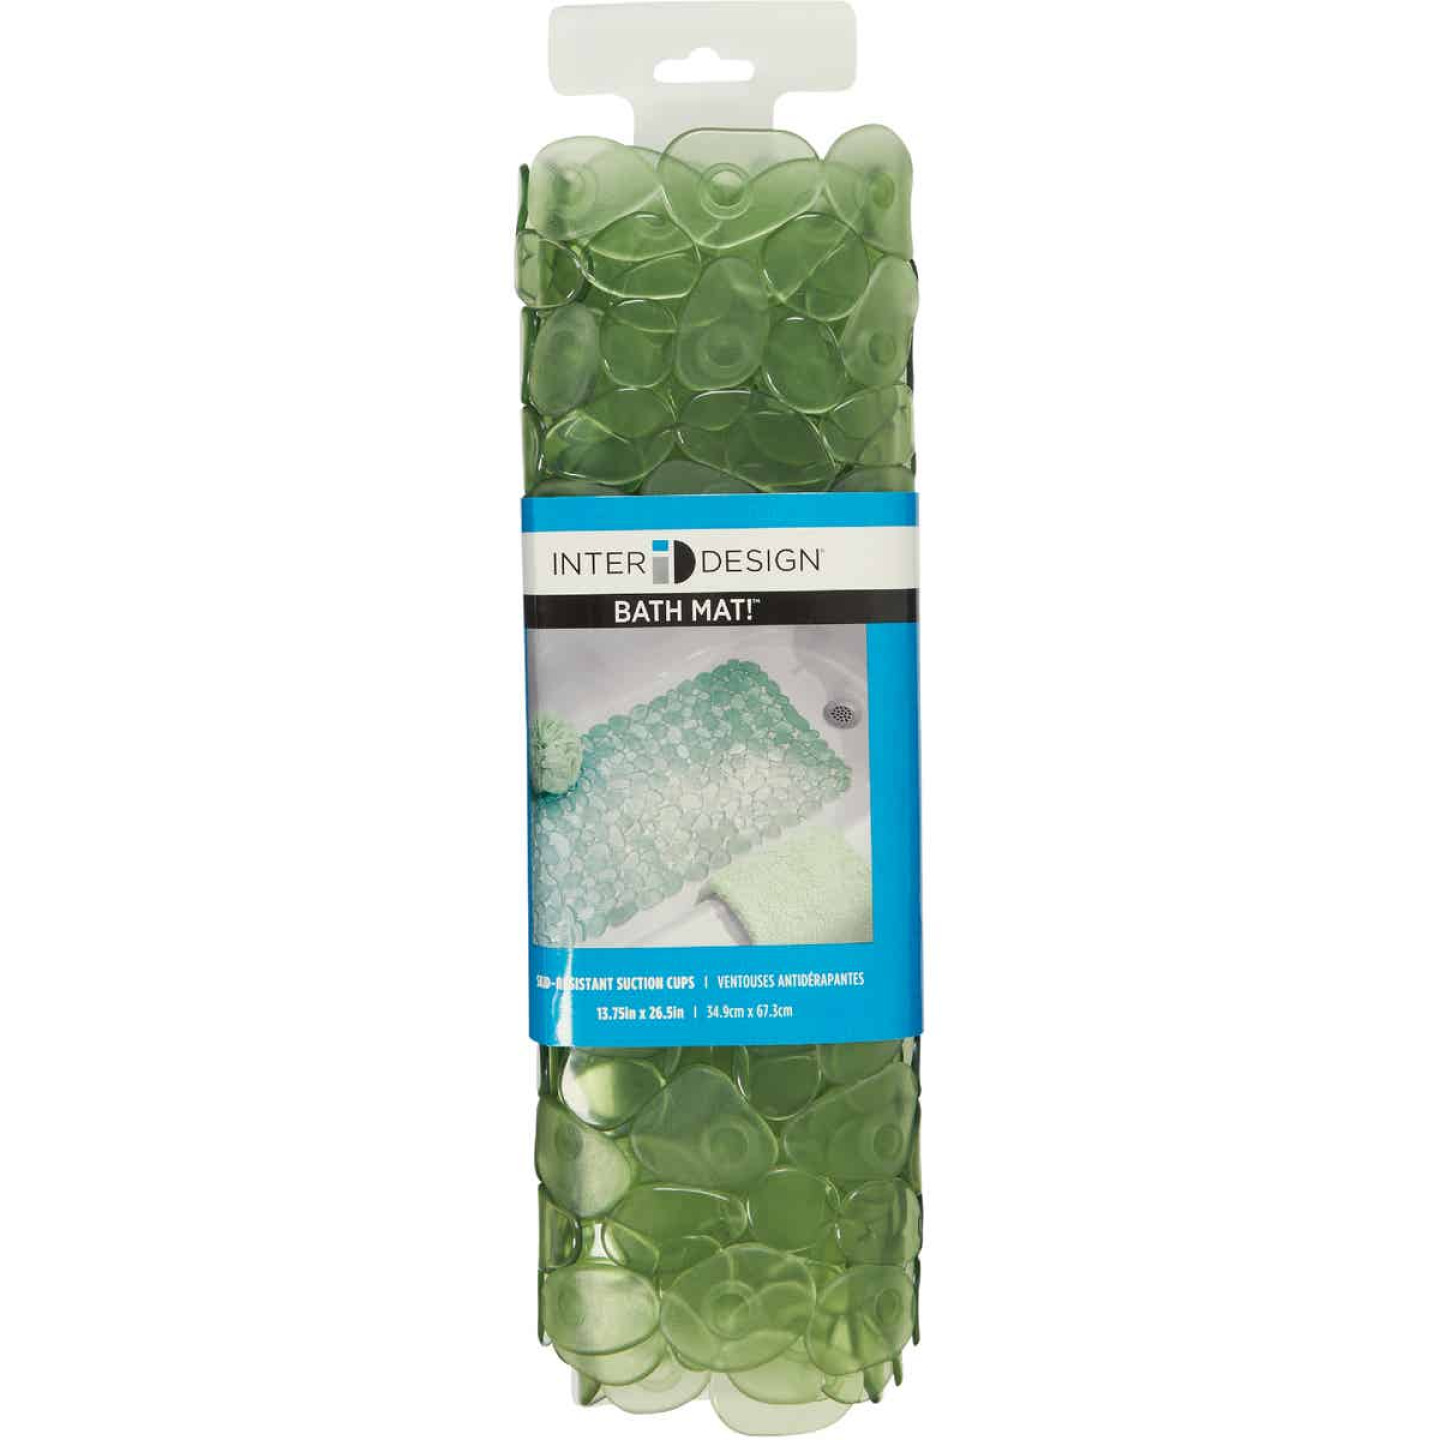 InterDesign Pebblz 13.75 In. x 26.50 In. Green Bath Mat Image 3